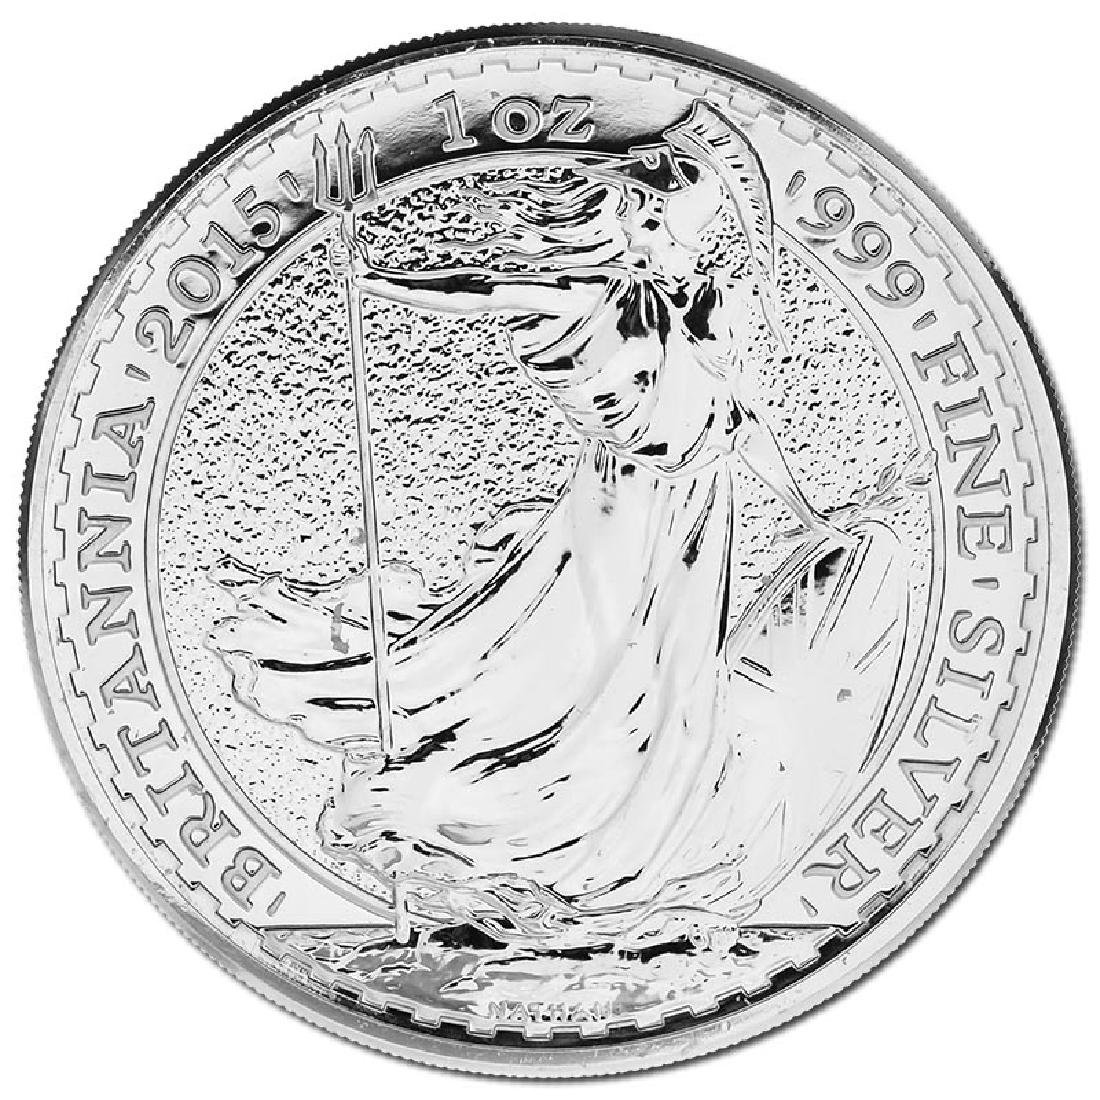 Uncirculated Silver Britannia 1 oz 2015